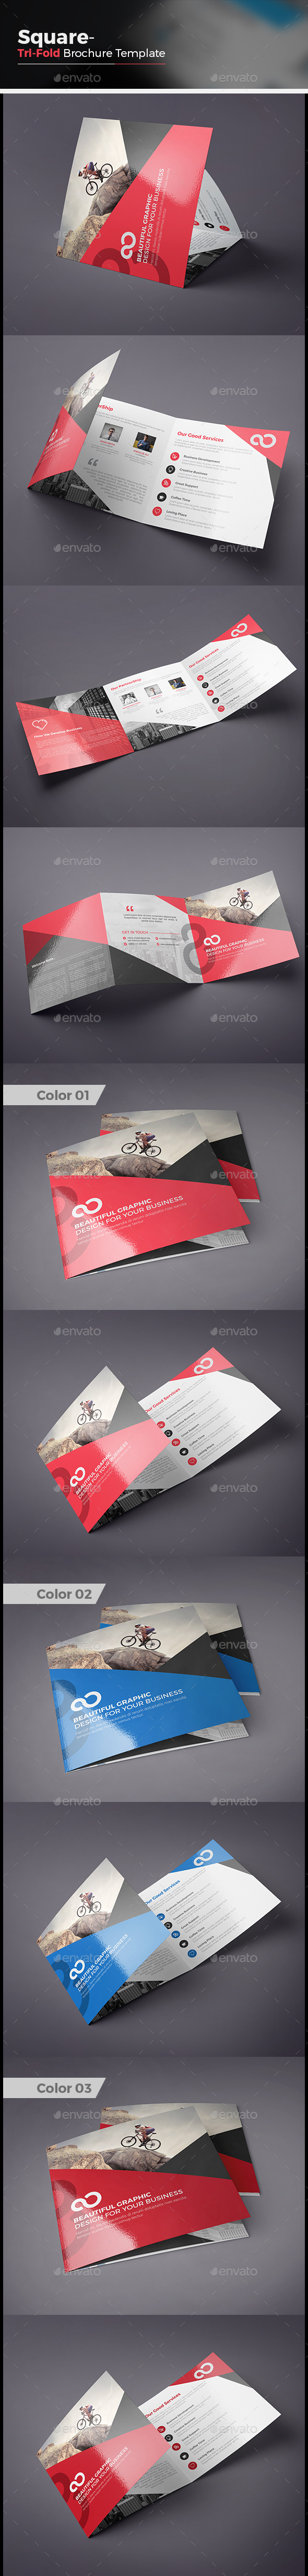 Square Tri fold Business Brochure - Corporate Brochures